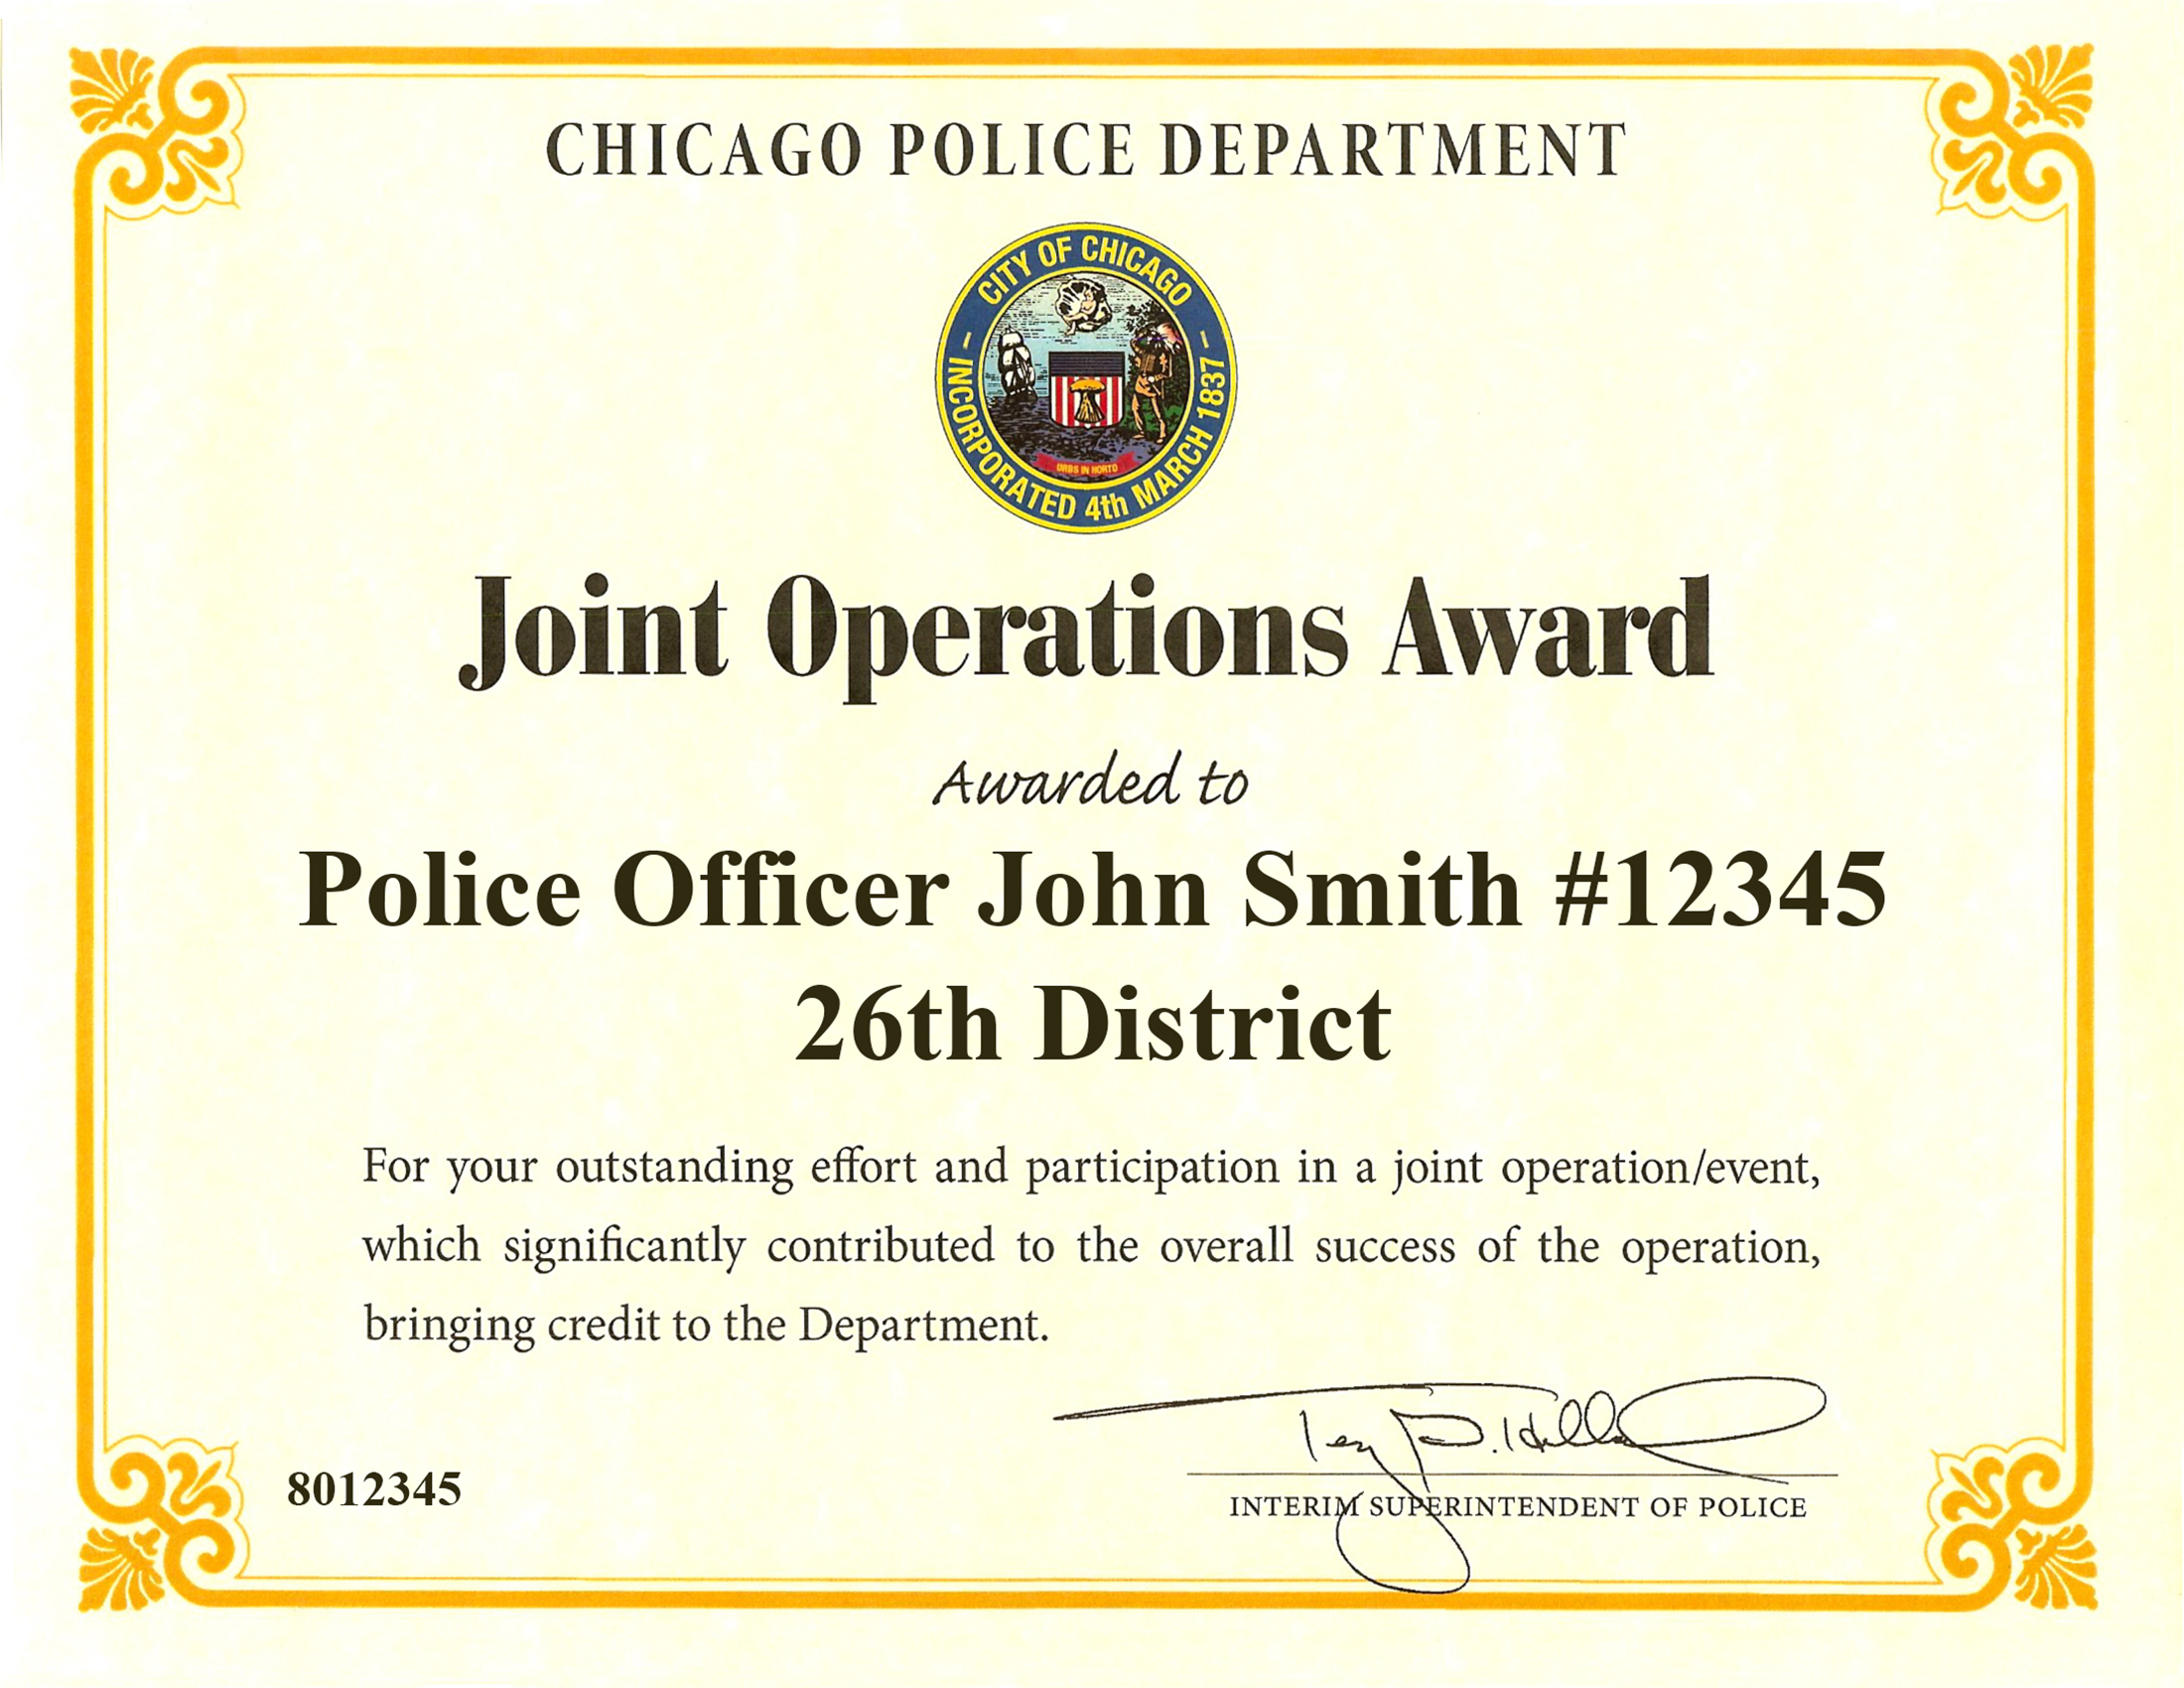 Joint Operations Award Certificate